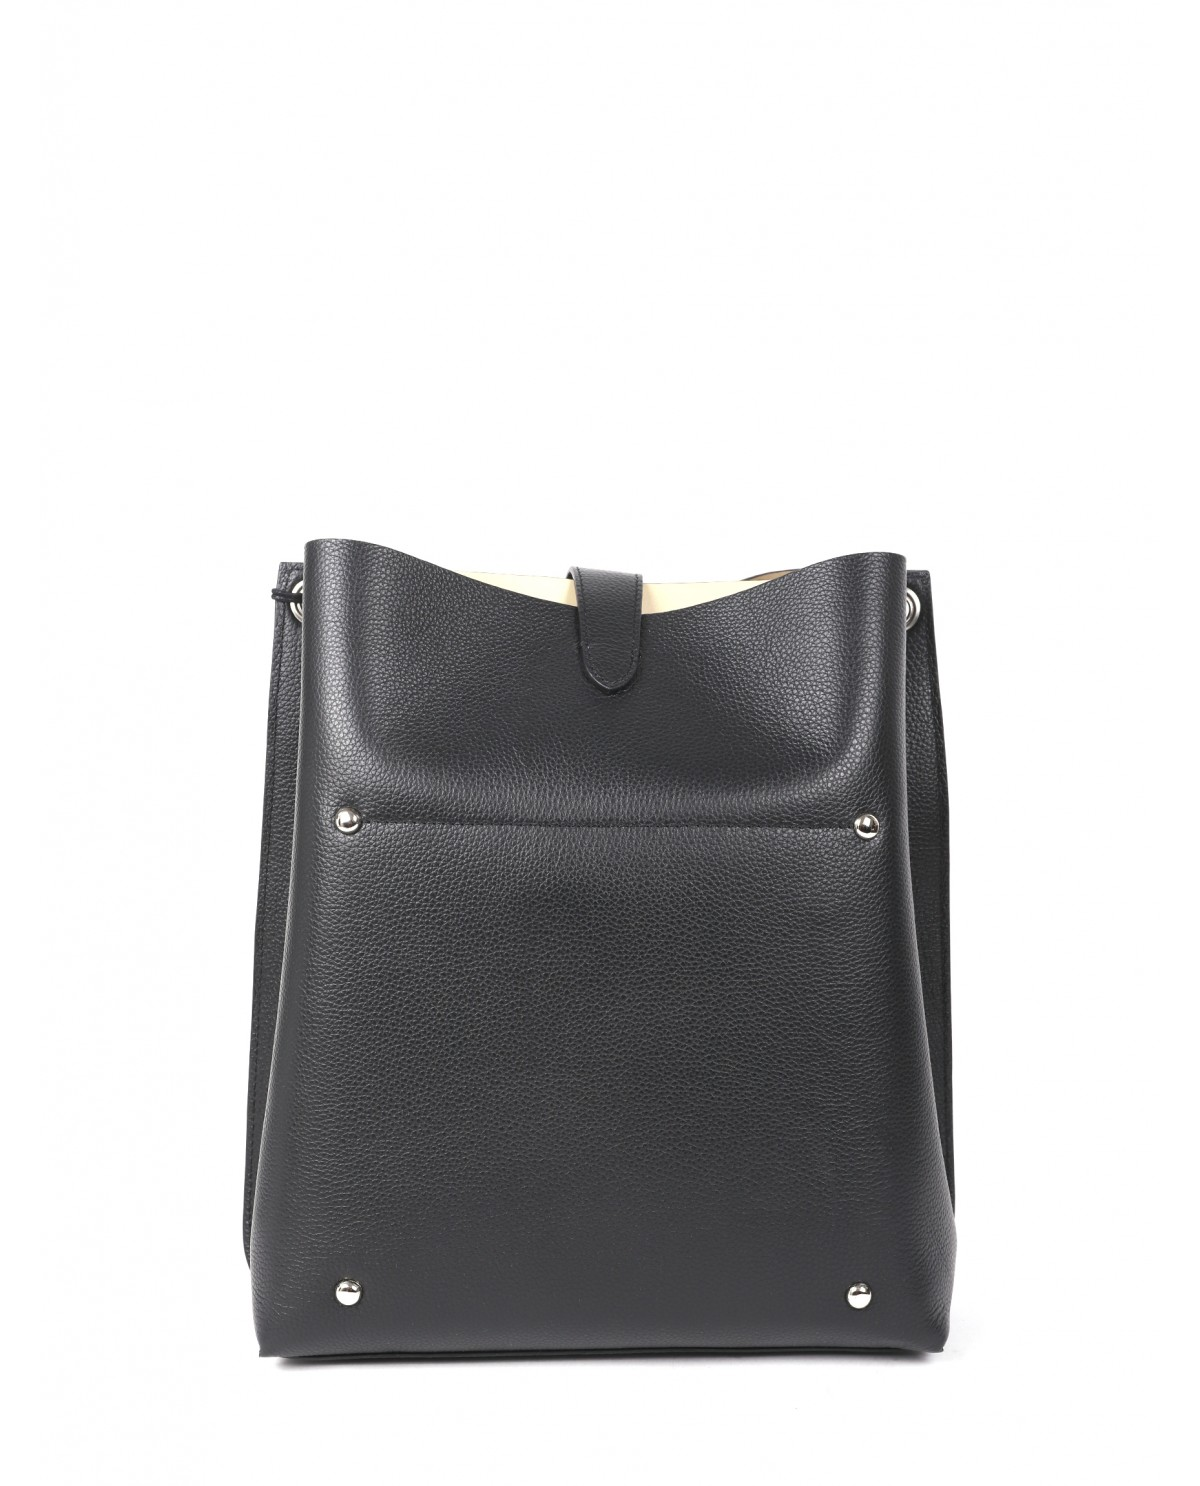 Dolce & Gabbana black Sicily bag